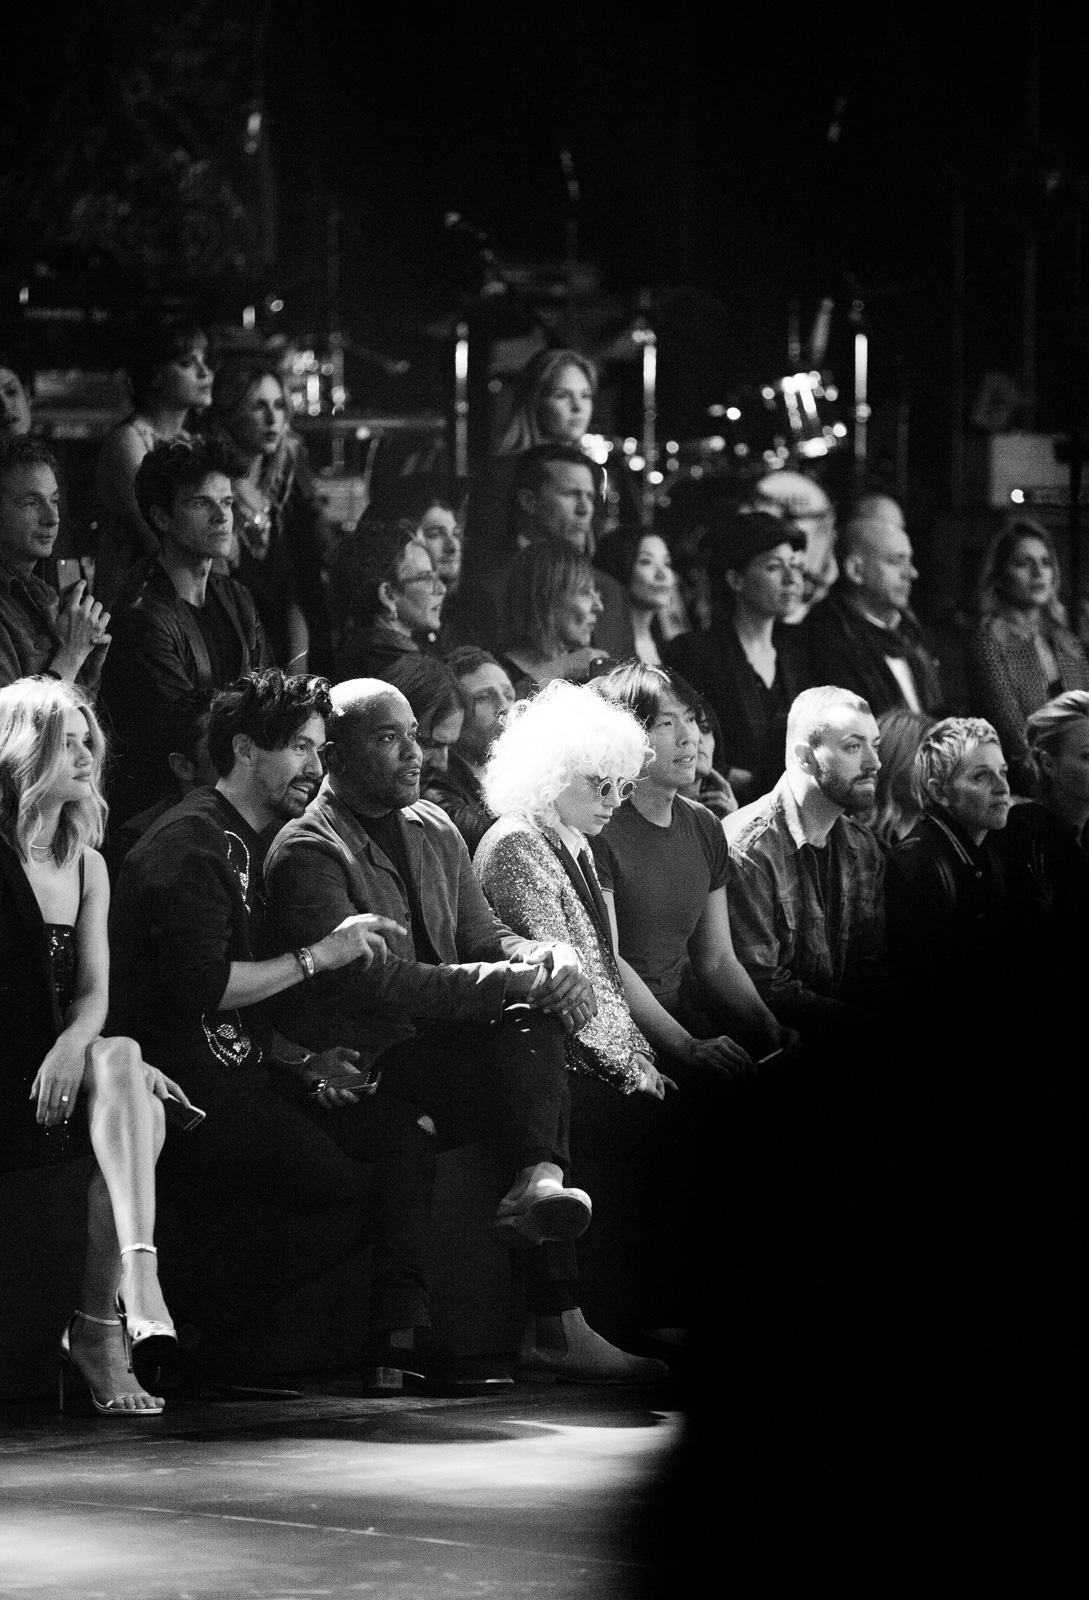 Rosie Huntington-Whiteley, Jahil Fisher, Lee Daniels, Lady Gaga, Sam Smith, Ellen DeGeneres in the front row at Saint Laurent FW16 (Hedi Slimane) at the Palladium on February 10, 2016 in Los Angeles, California.